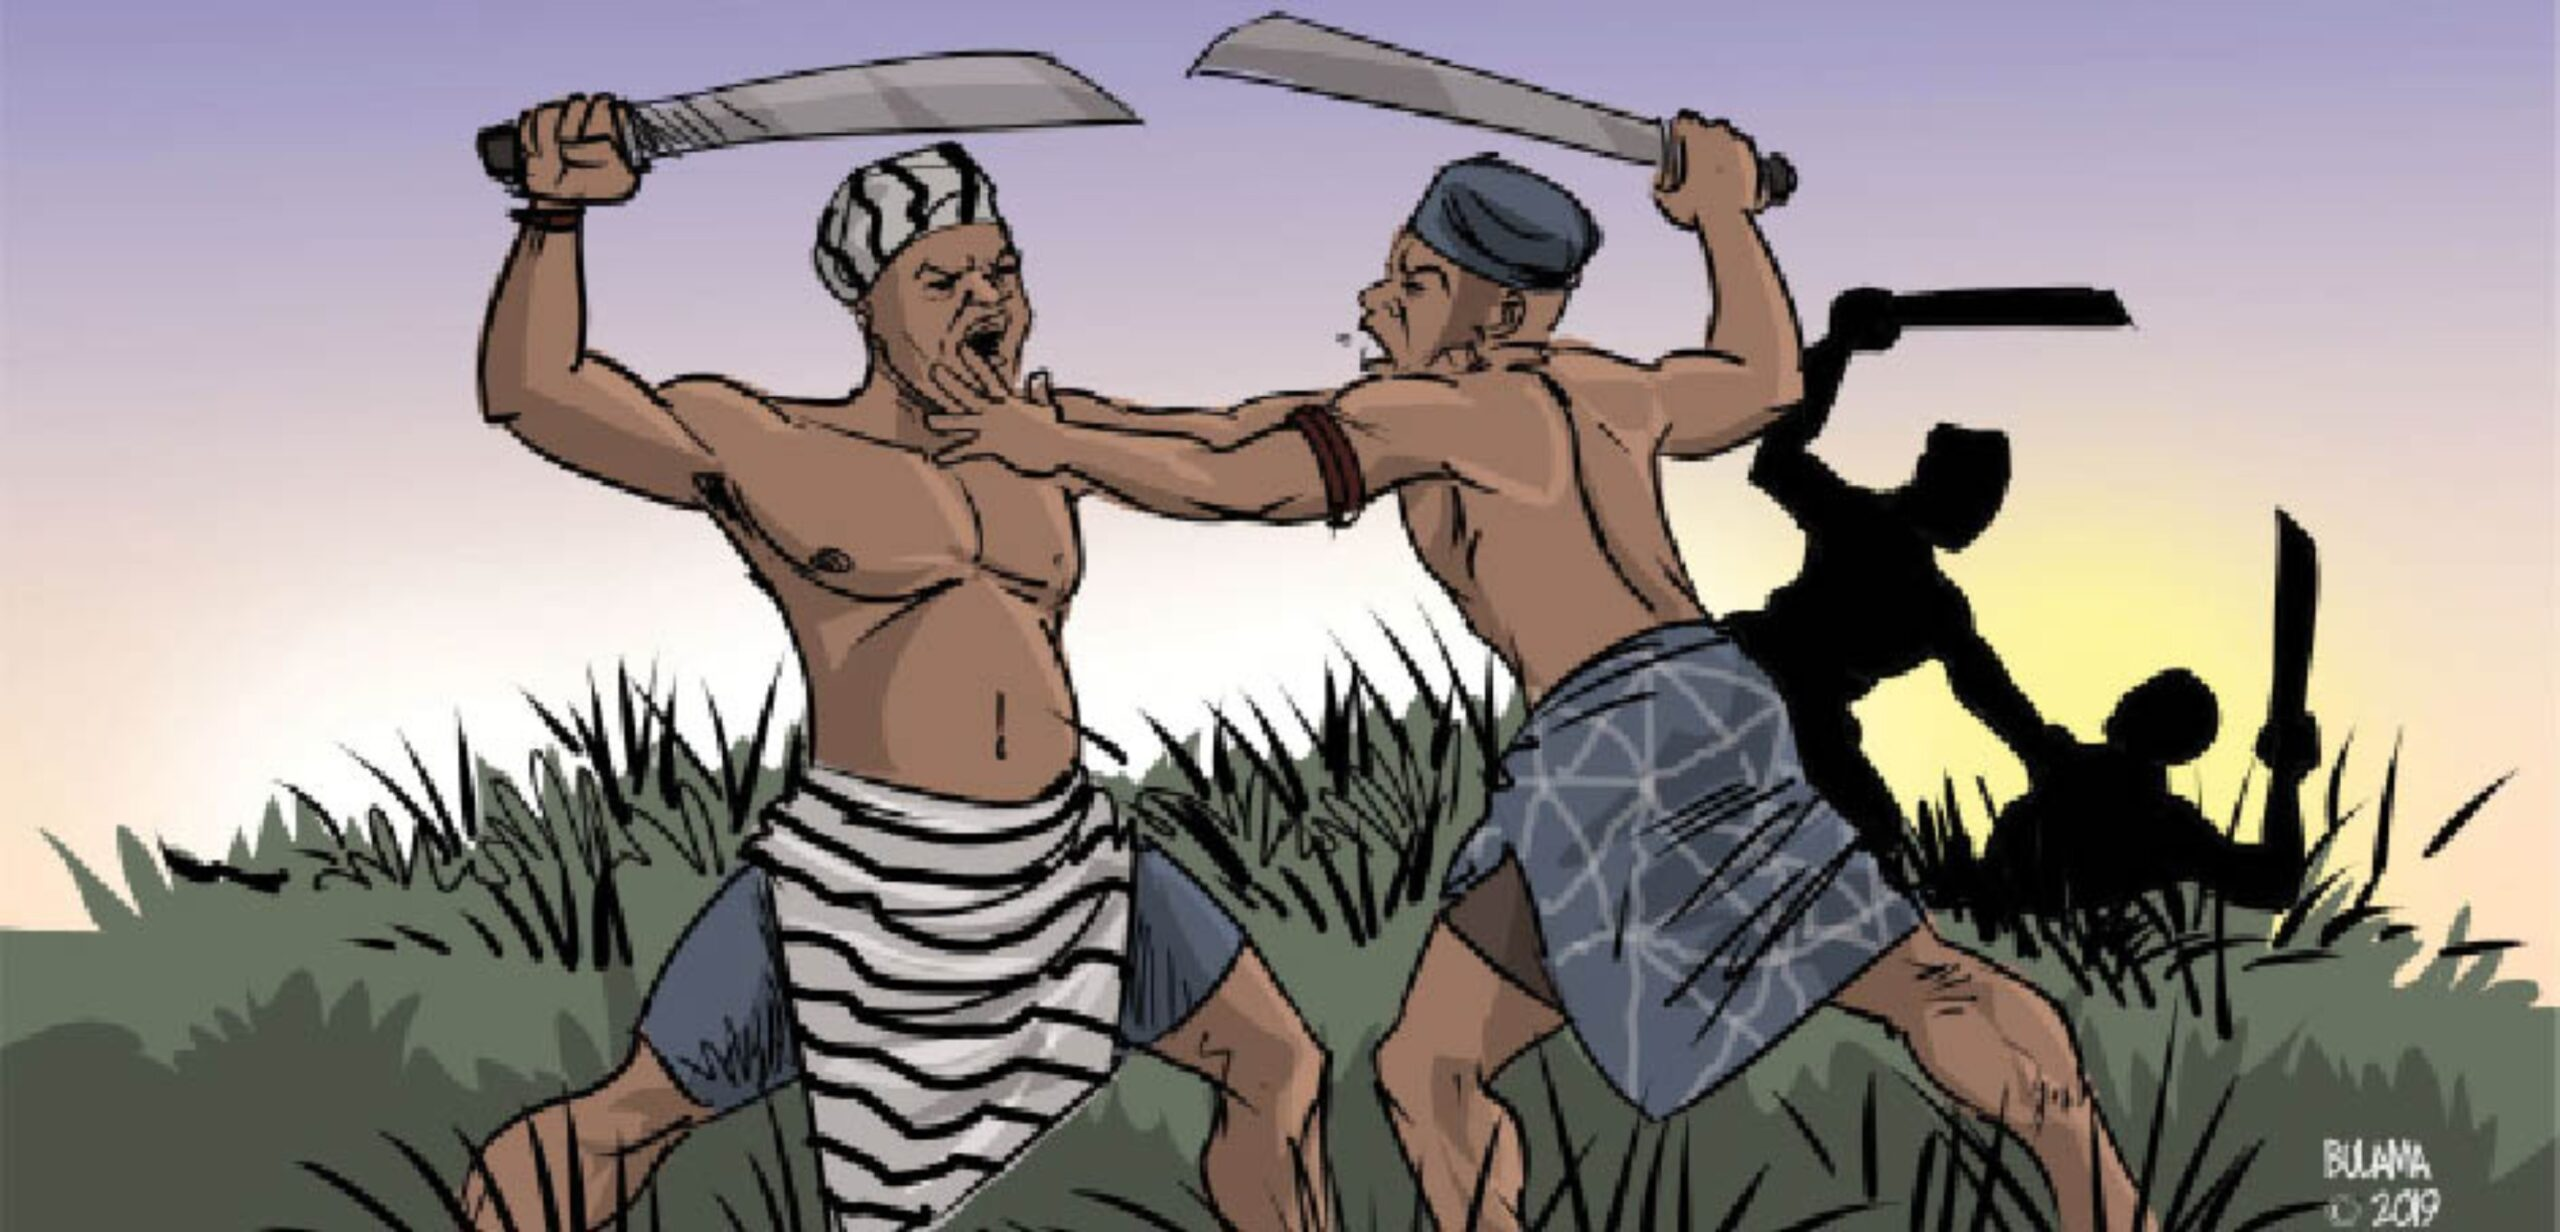 Igbede, Odoso communal crisis laid to rest